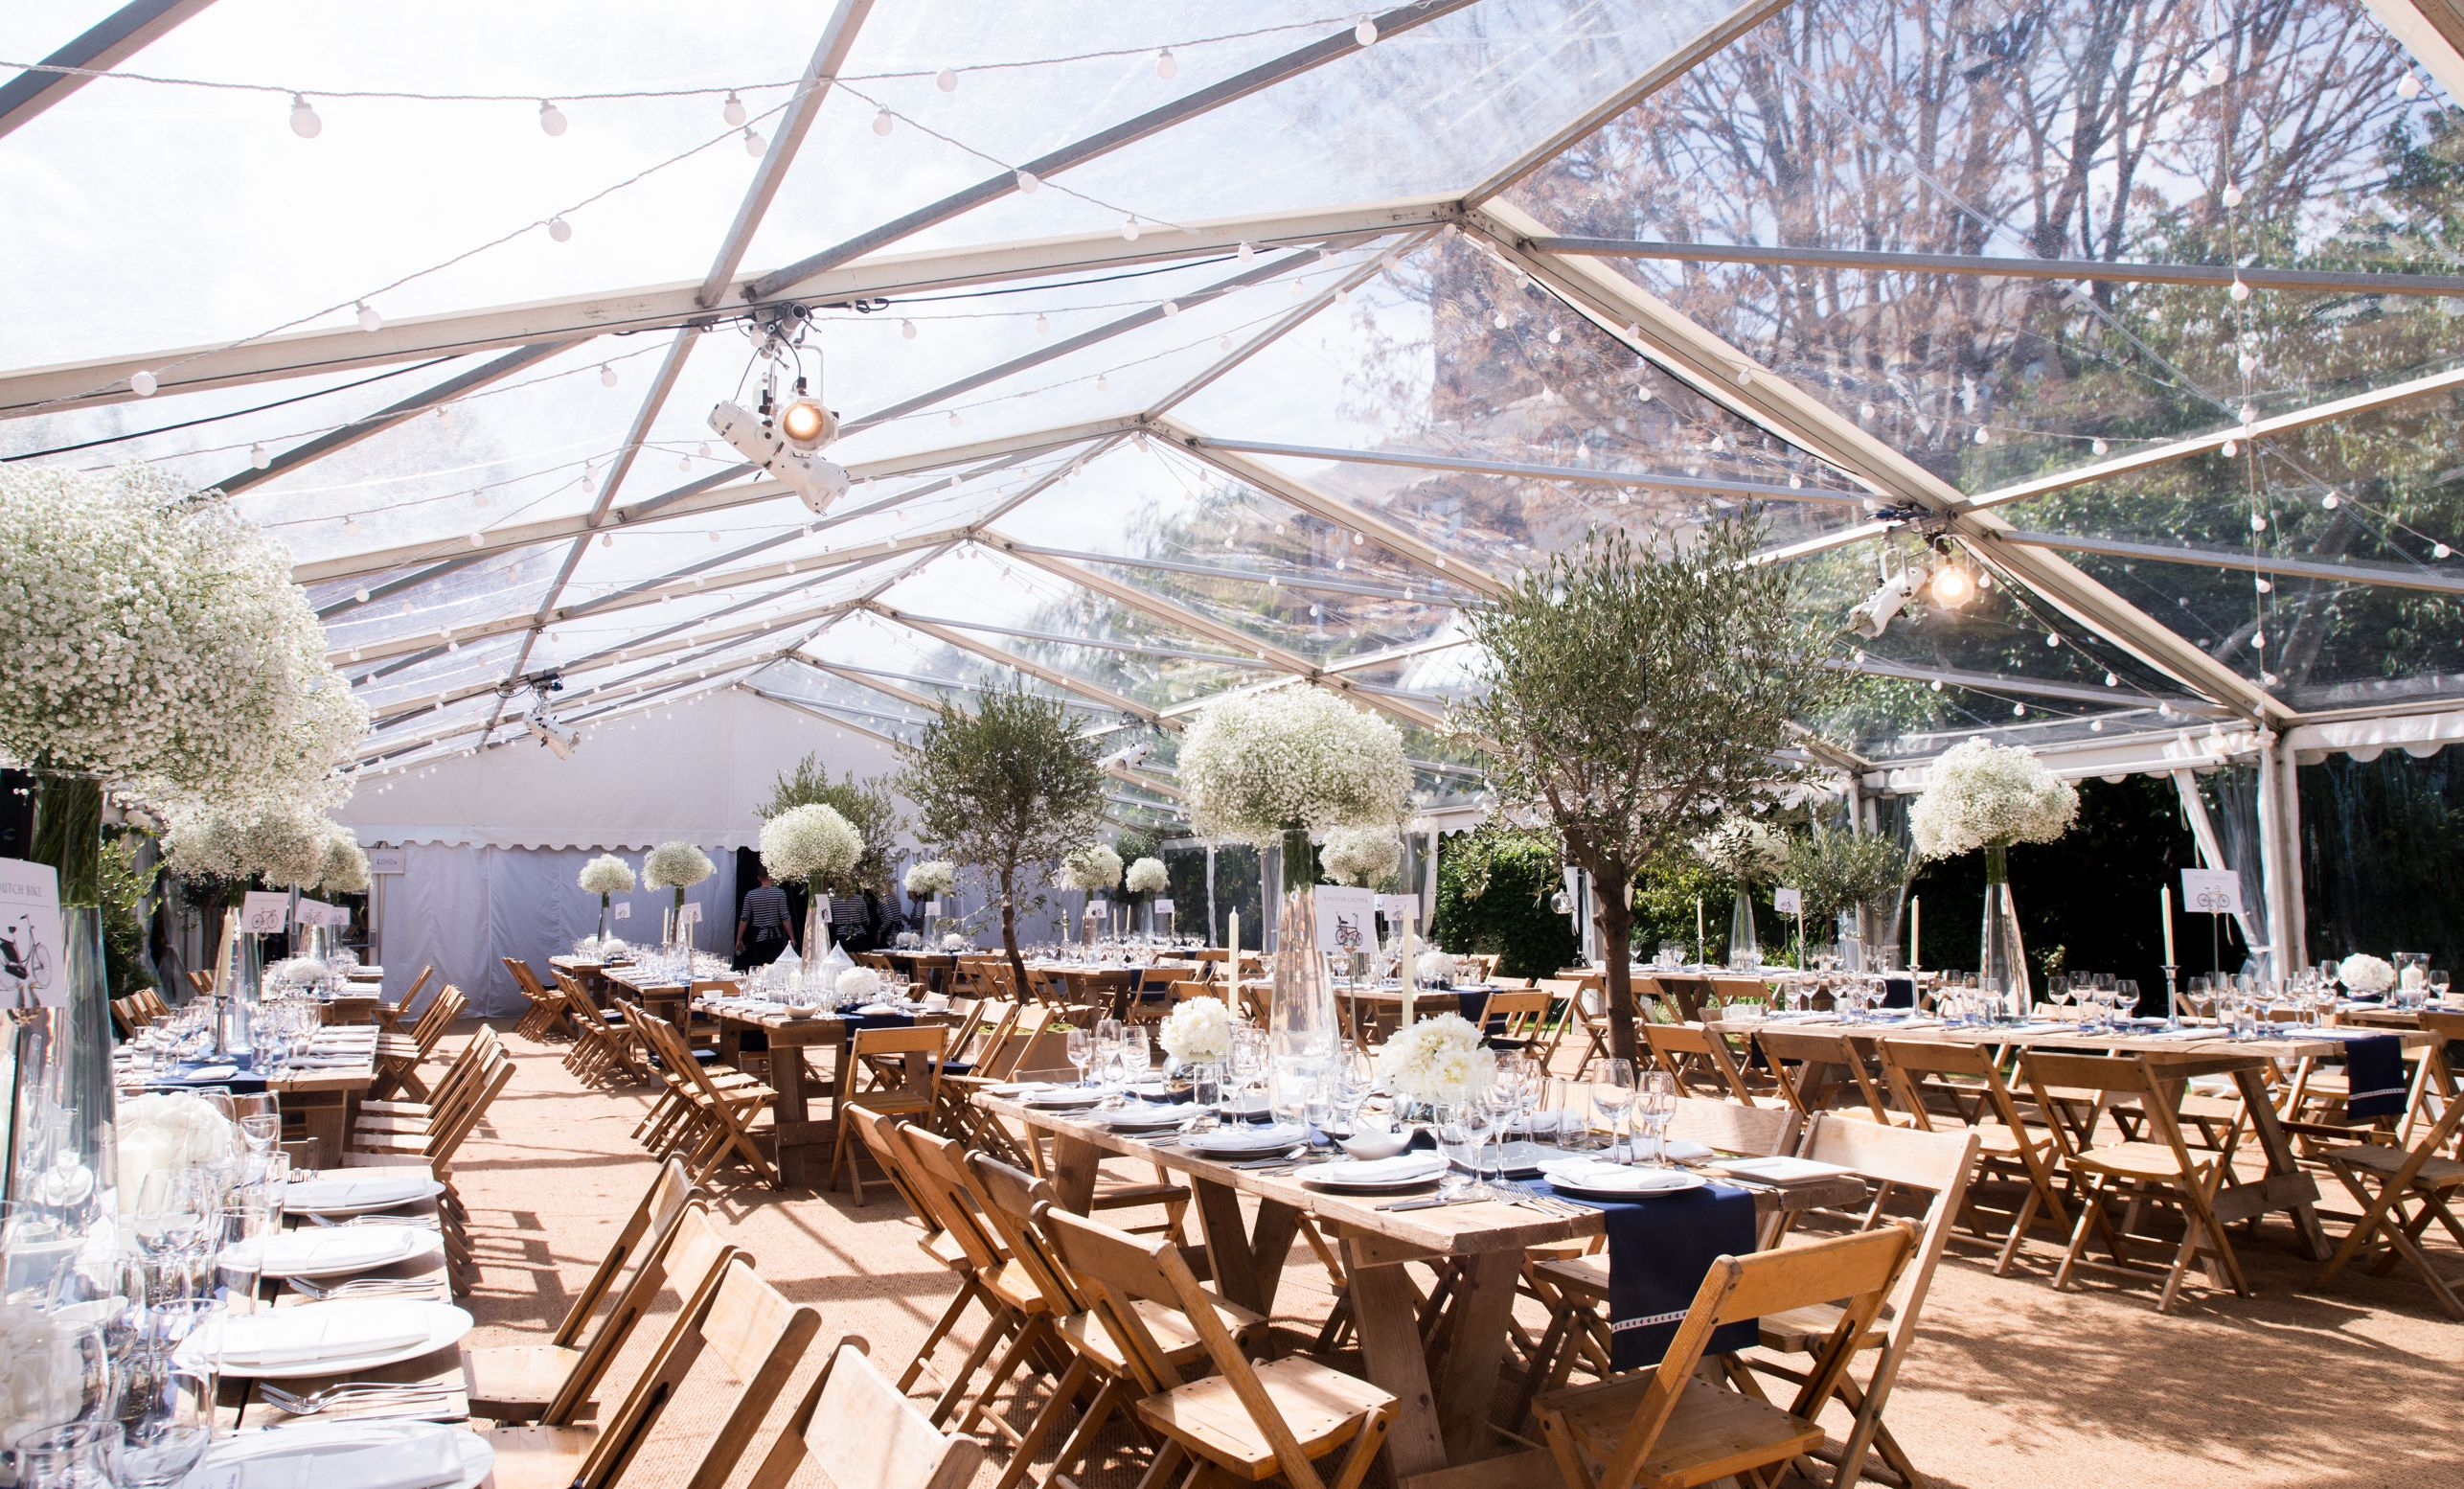 Stunning clear marquee for a summer wedding in clifton bristol stunning clear marquee for a summer wedding in clifton bristol organised by alastair currie events junglespirit Images